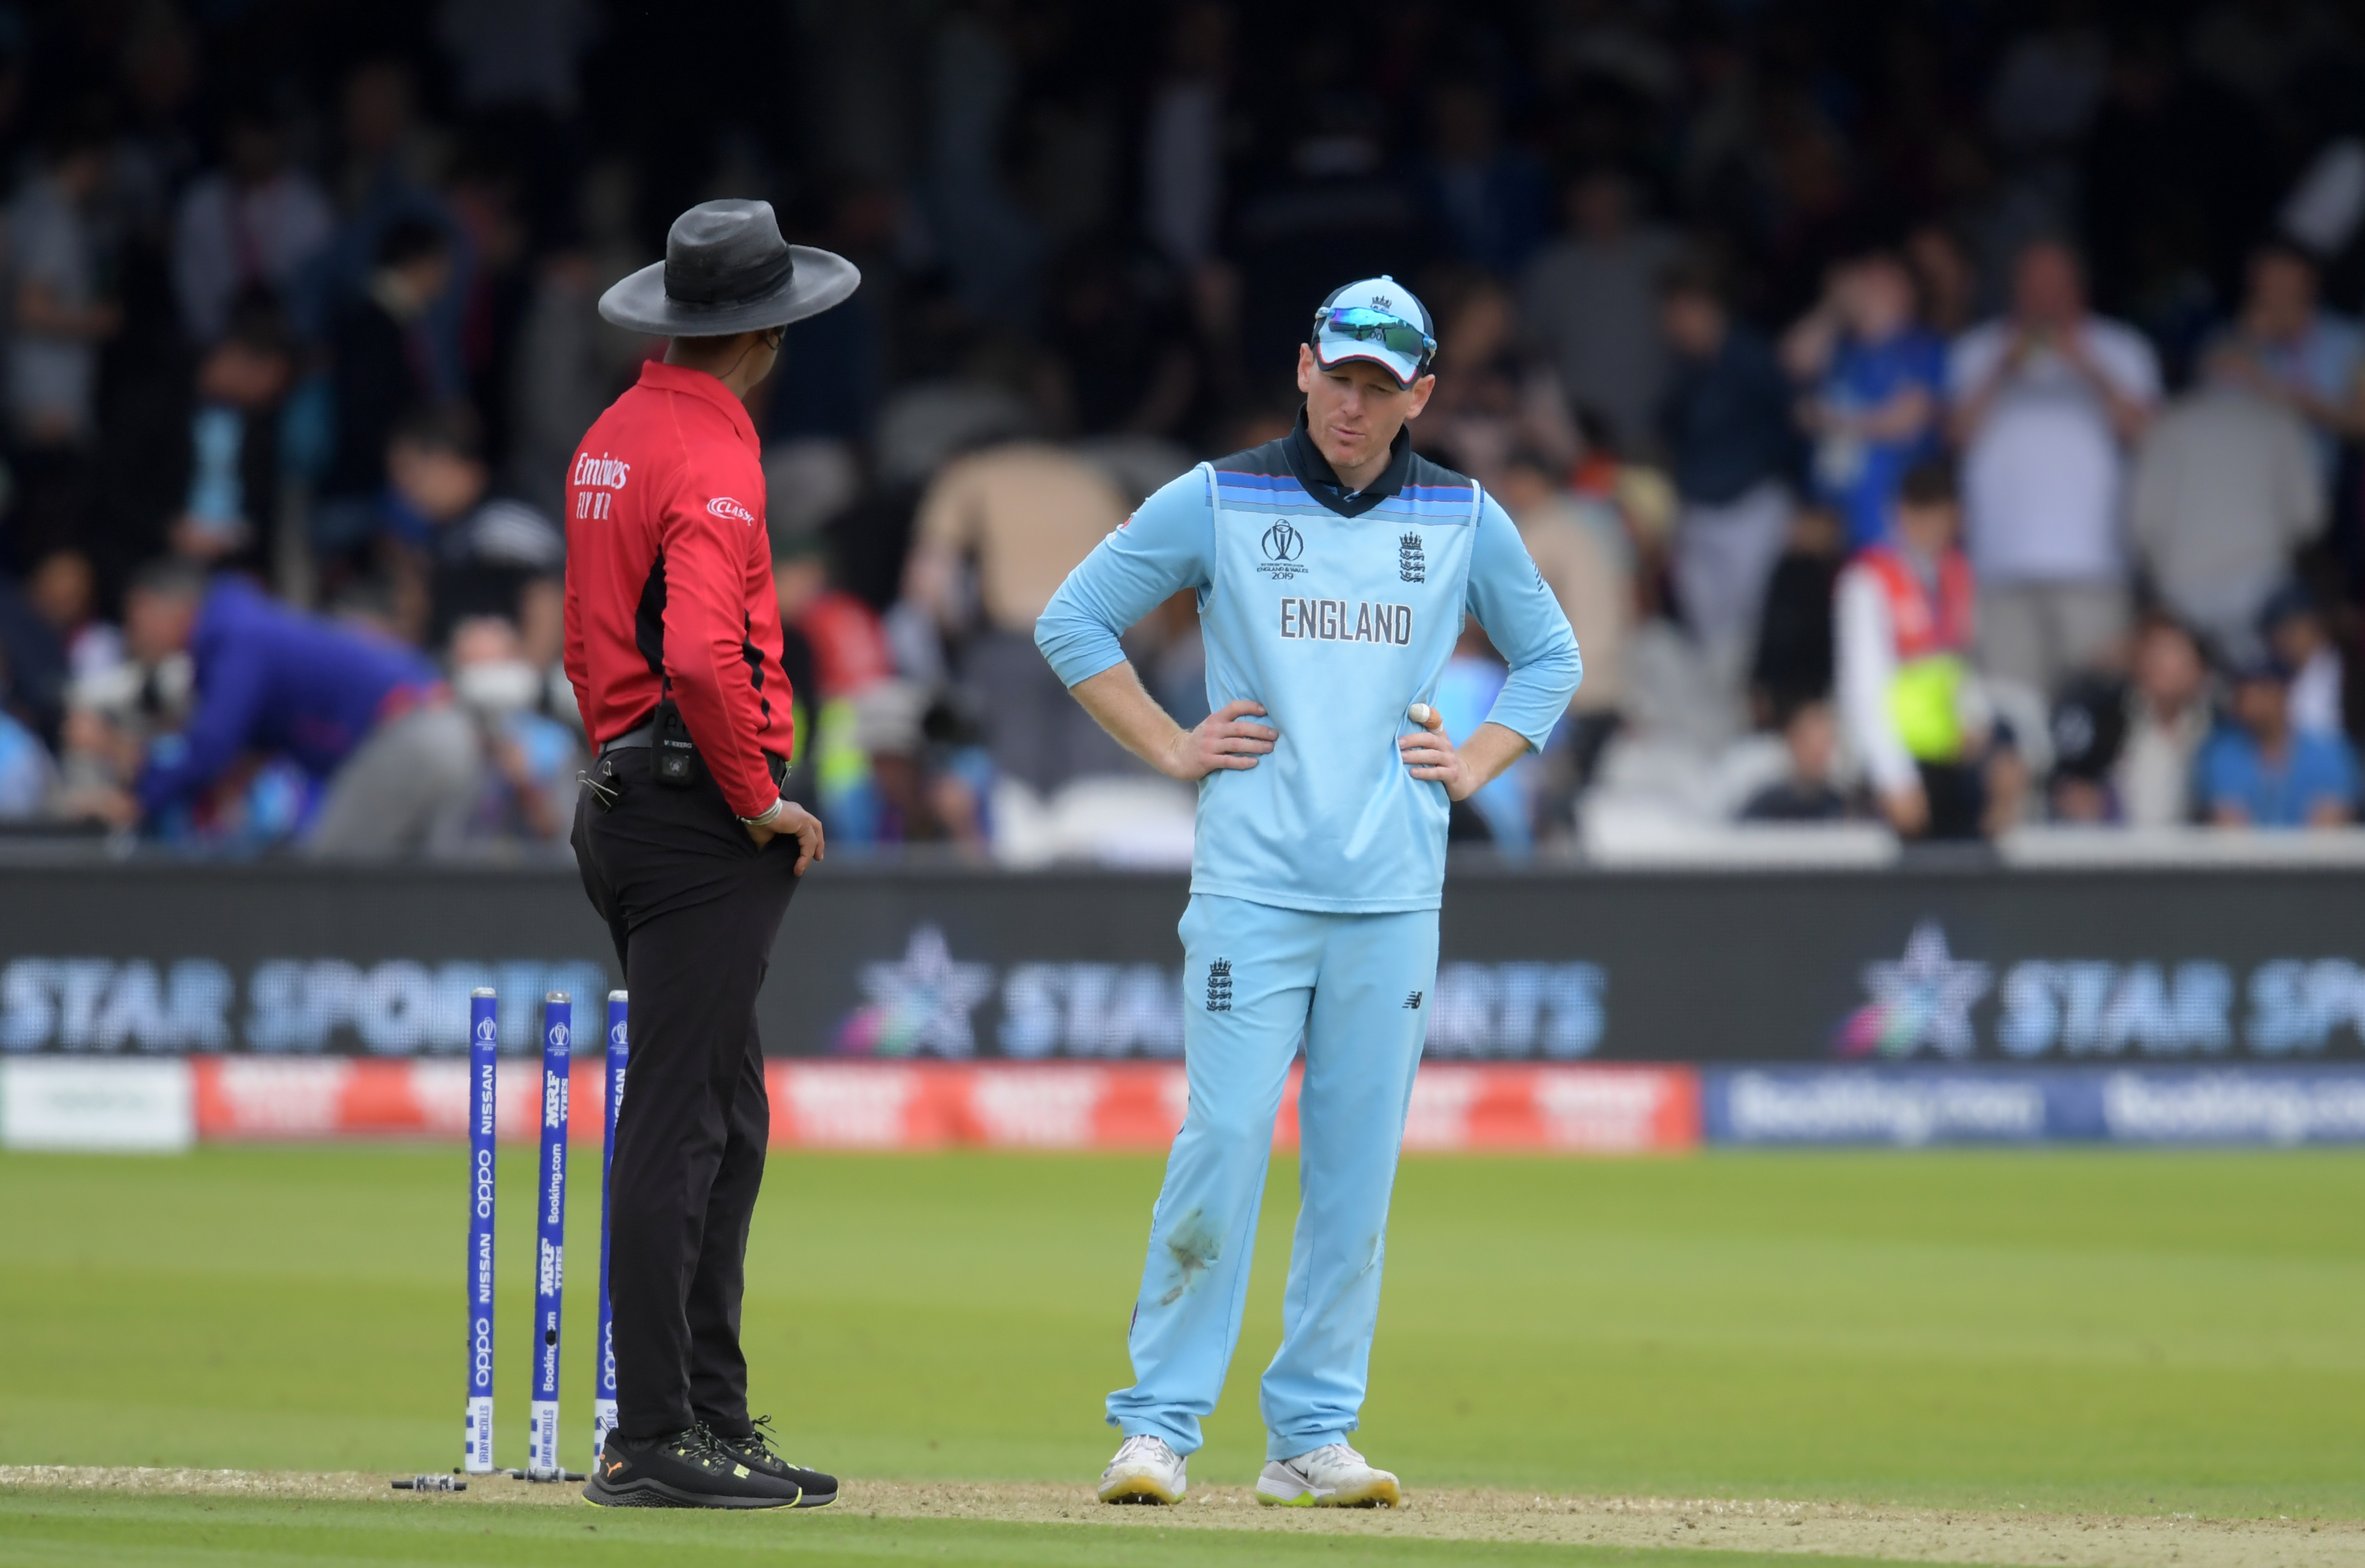 England's captain Eoin Morgan (R) speaks with umpire Kumar Dharmasena as he looks at the wicket after the New Zealand innings during the 2019 Cricket World Cup final between England and New Zealand at Lord's Cricket Ground in London on July 14, 2019.